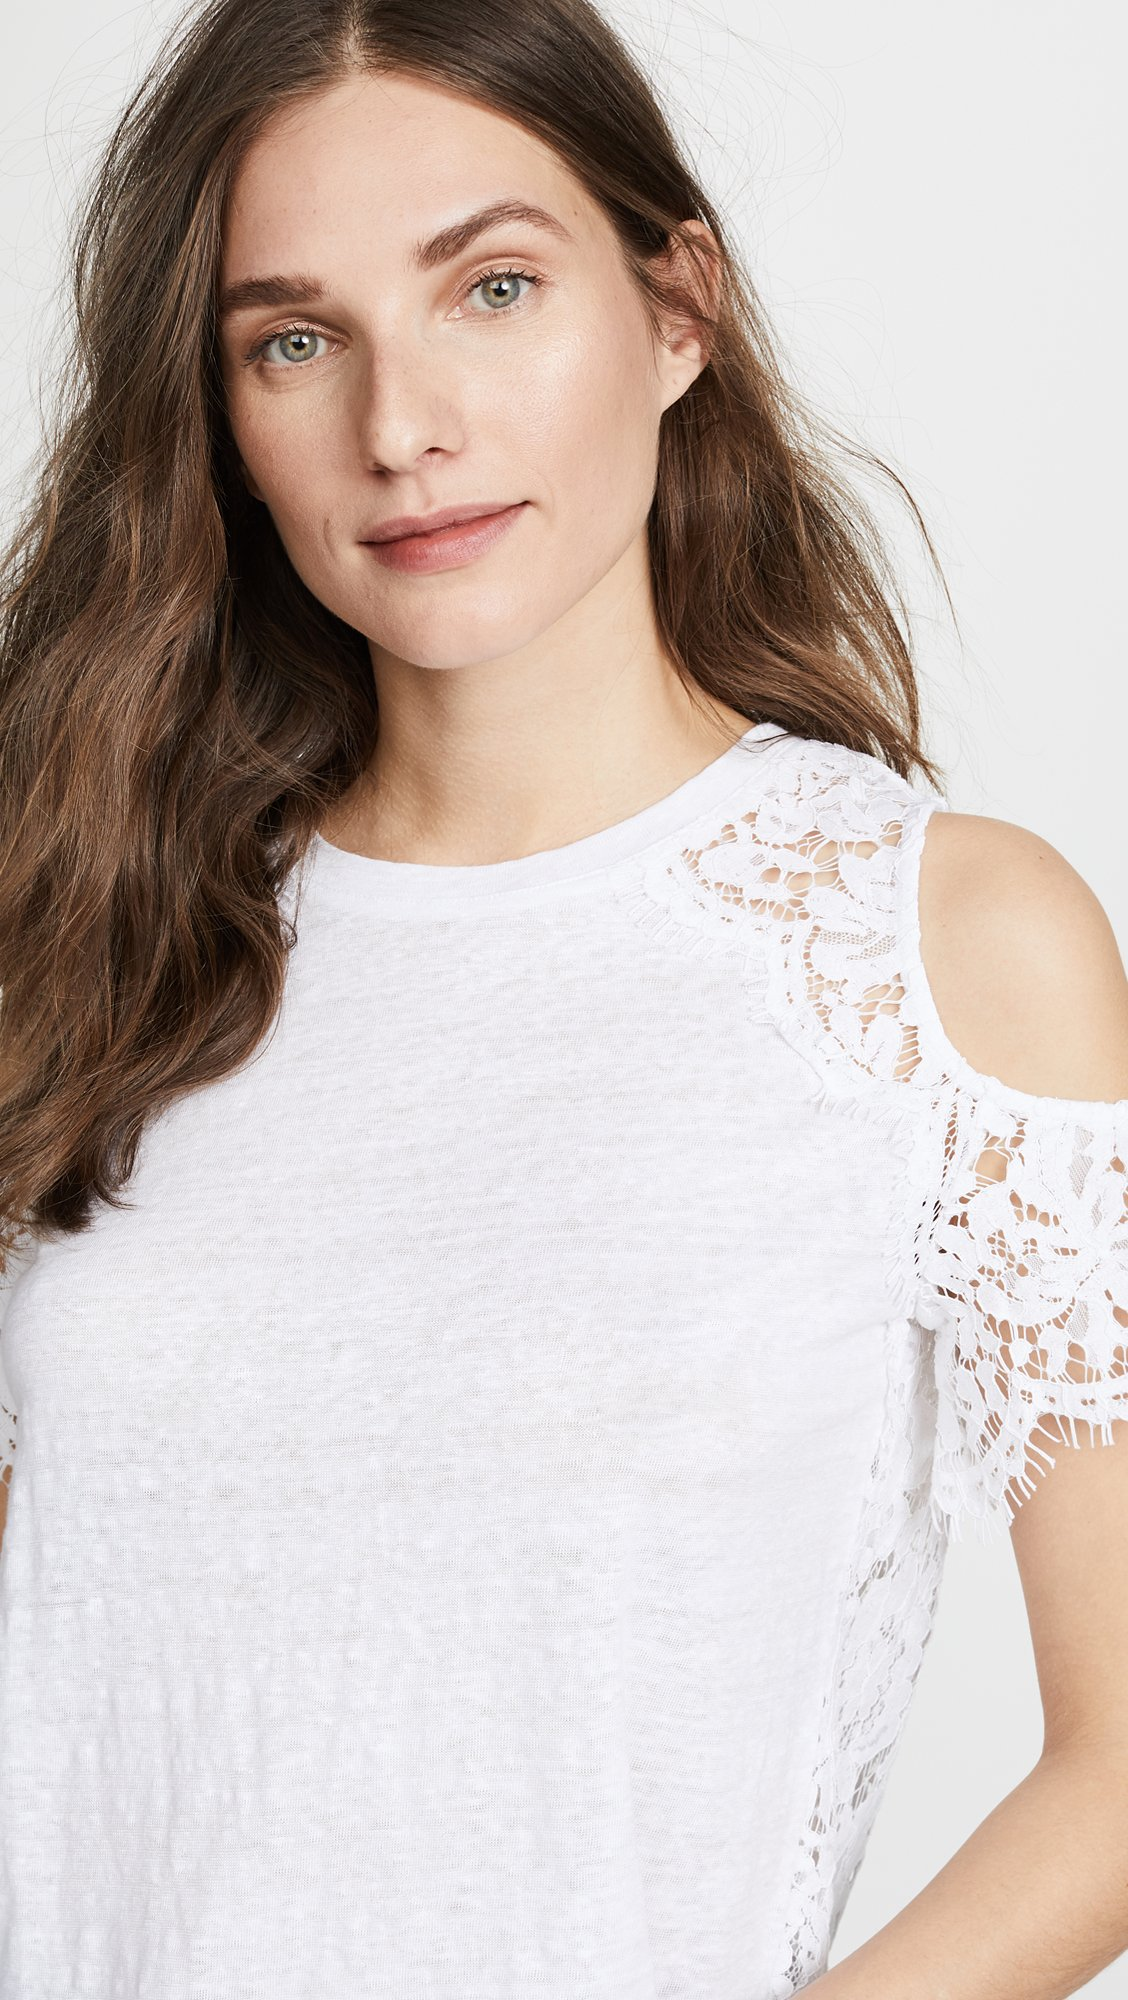 Generation Love Women's London Lace Cold Shoulder Tee, White, Small by Generation Love (Image #6)